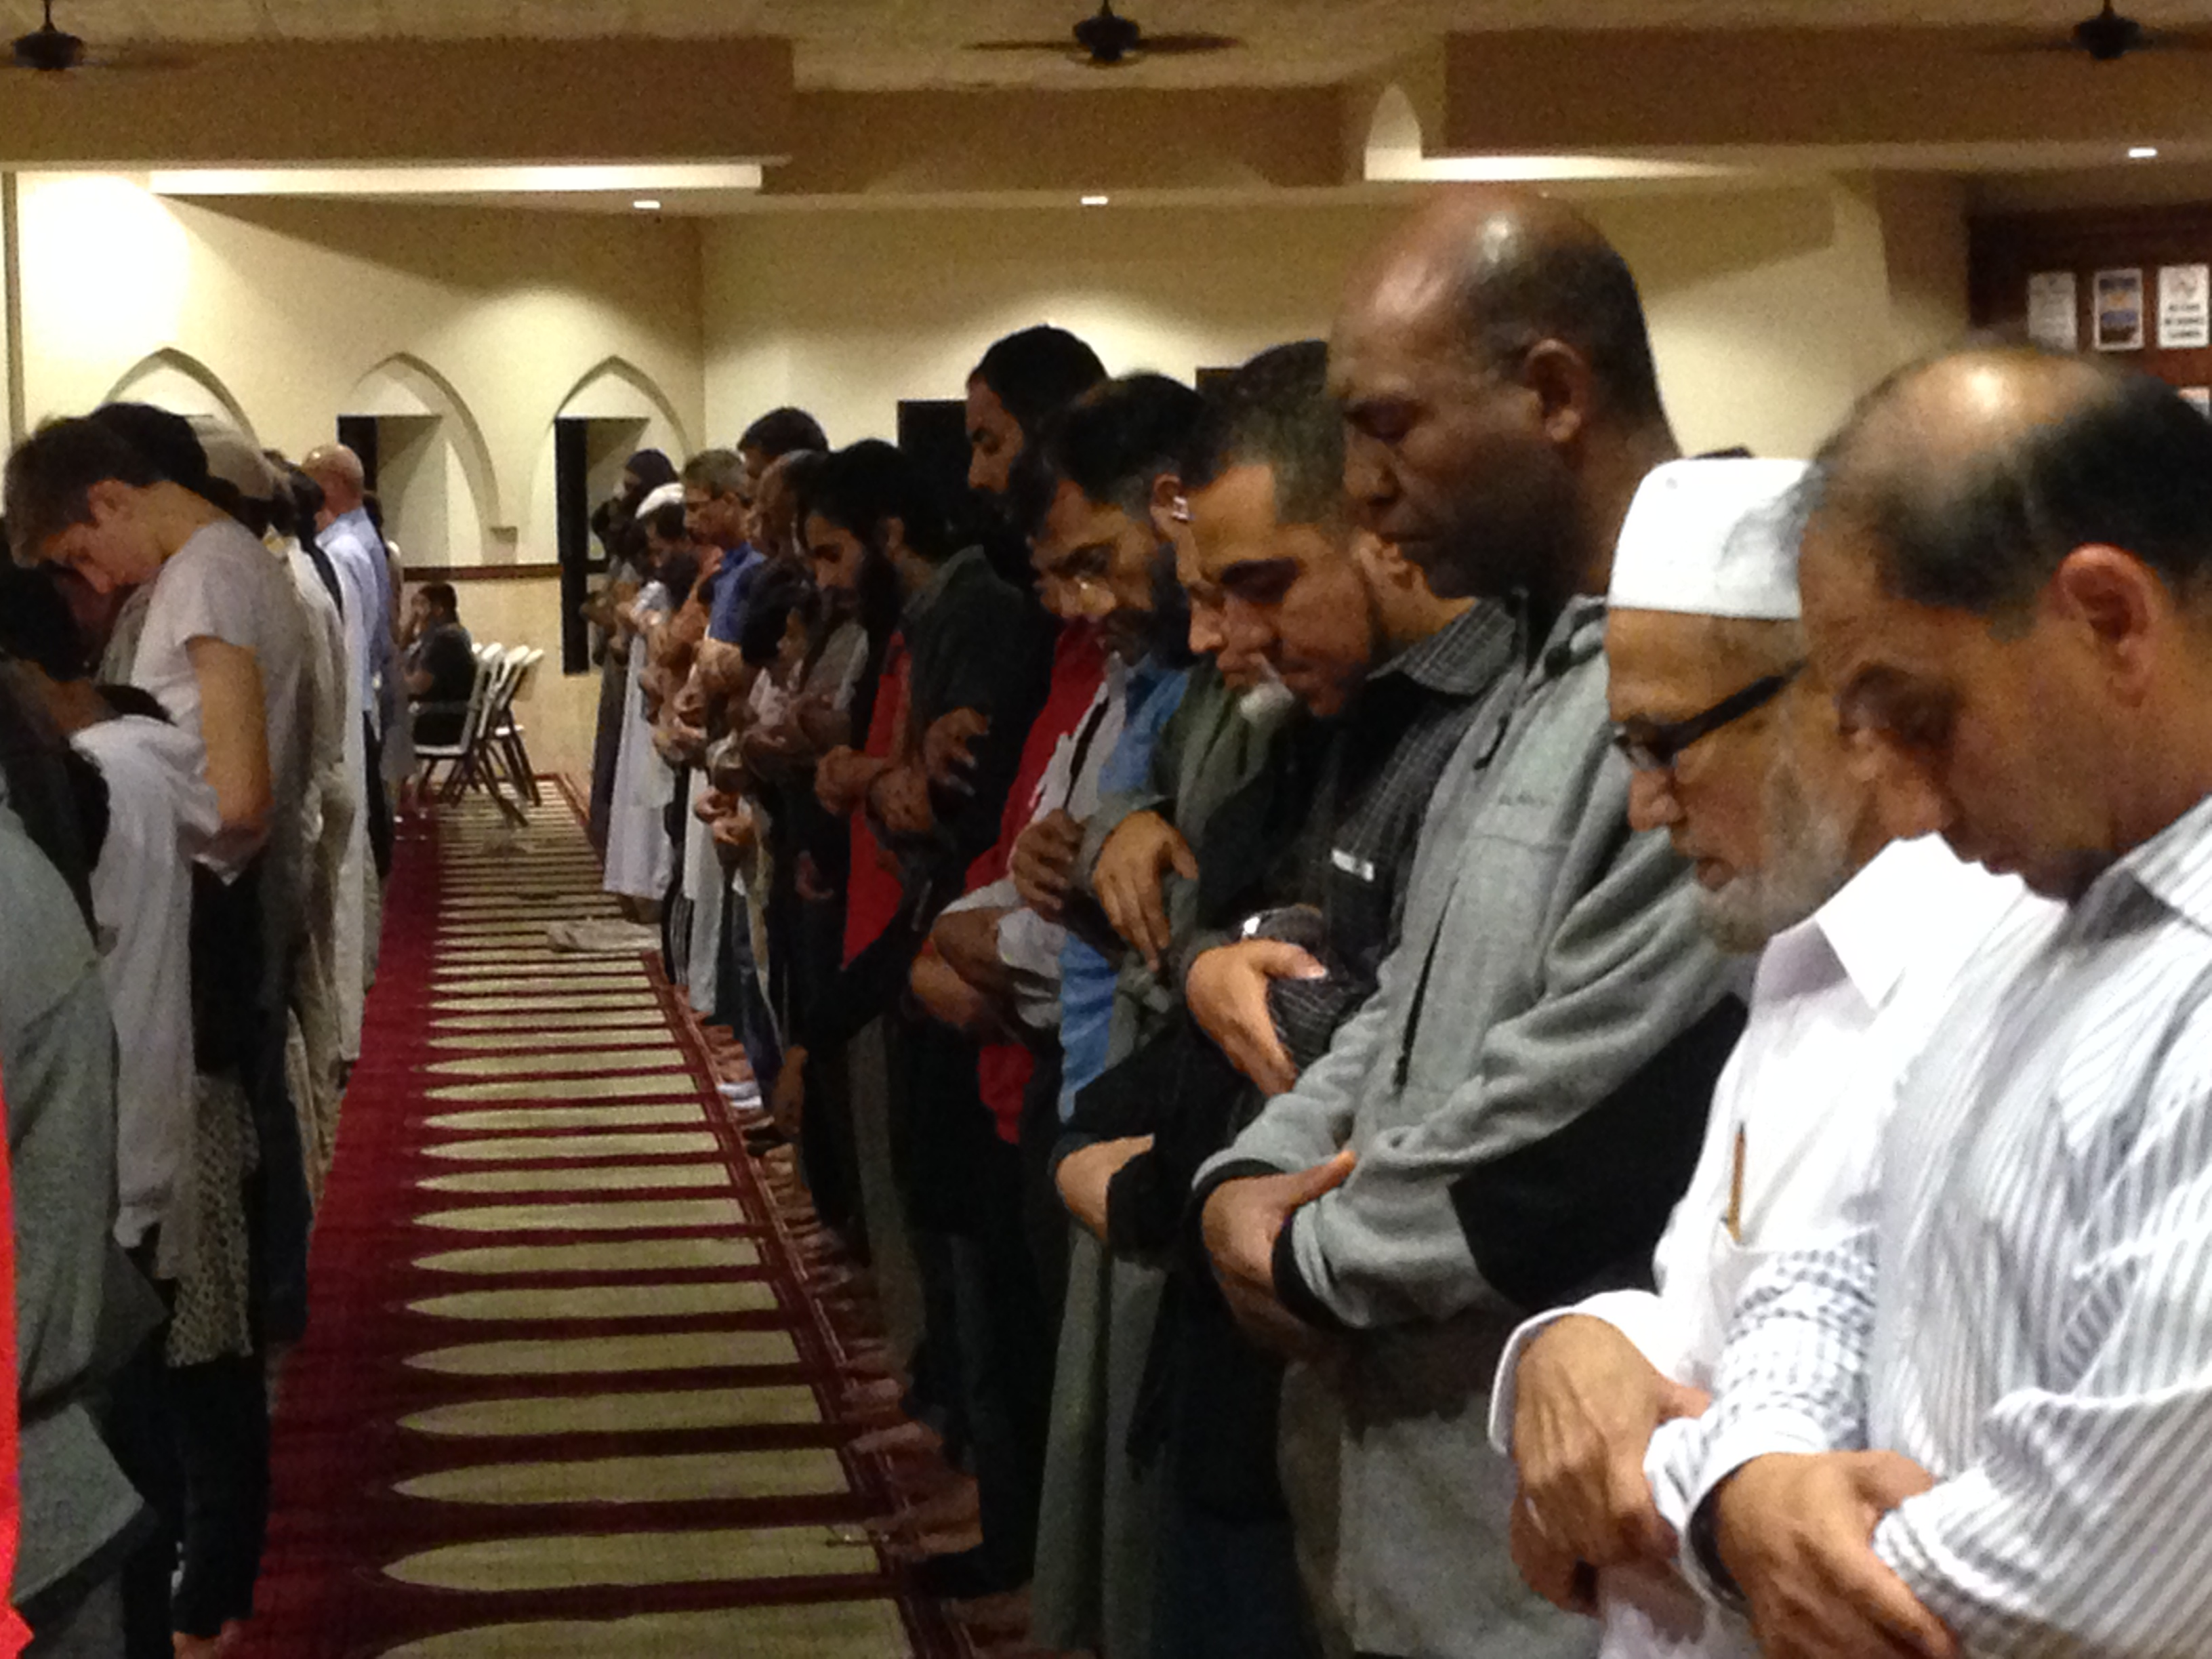 Evening prayers at the Maryam Mosque in Sugar Land Texas. Jaime Mujahid Fletcher is fourth from the right.